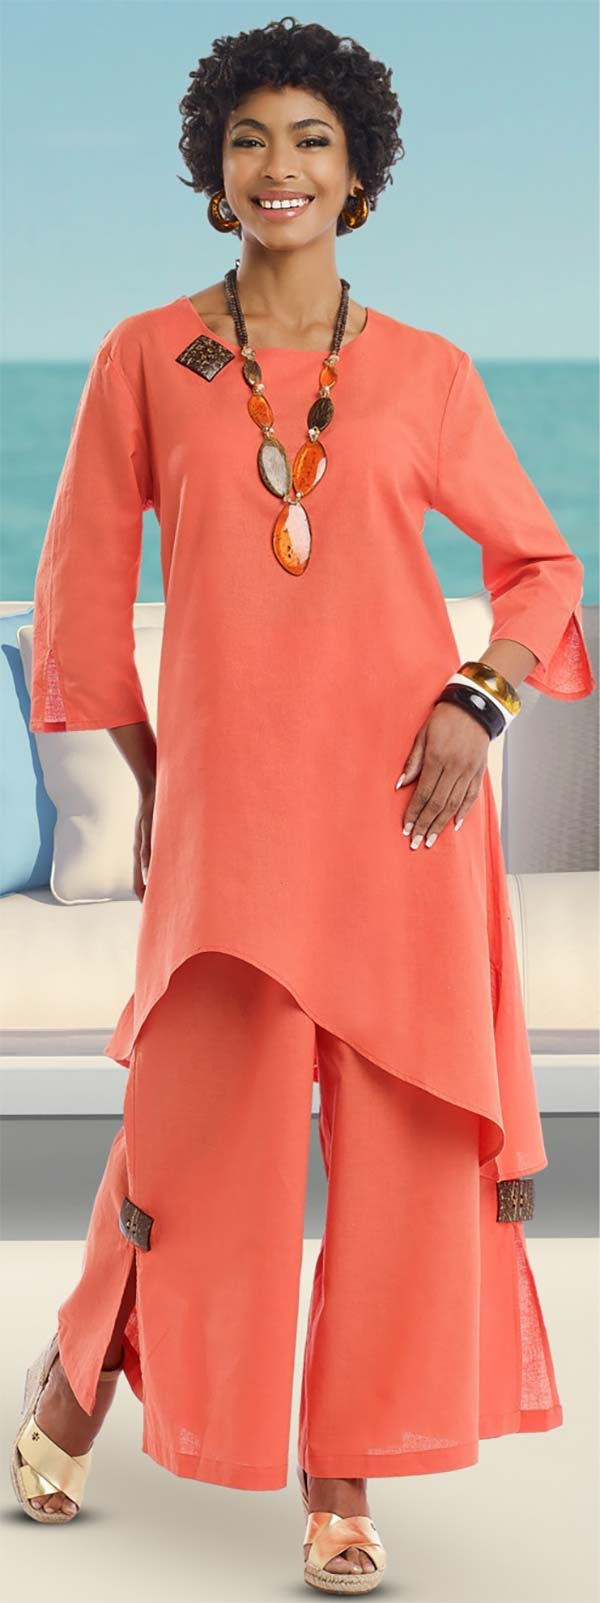 Lisa Rene 3322-Orange - Womens Linen Tunic And Pant Set With Wood Details